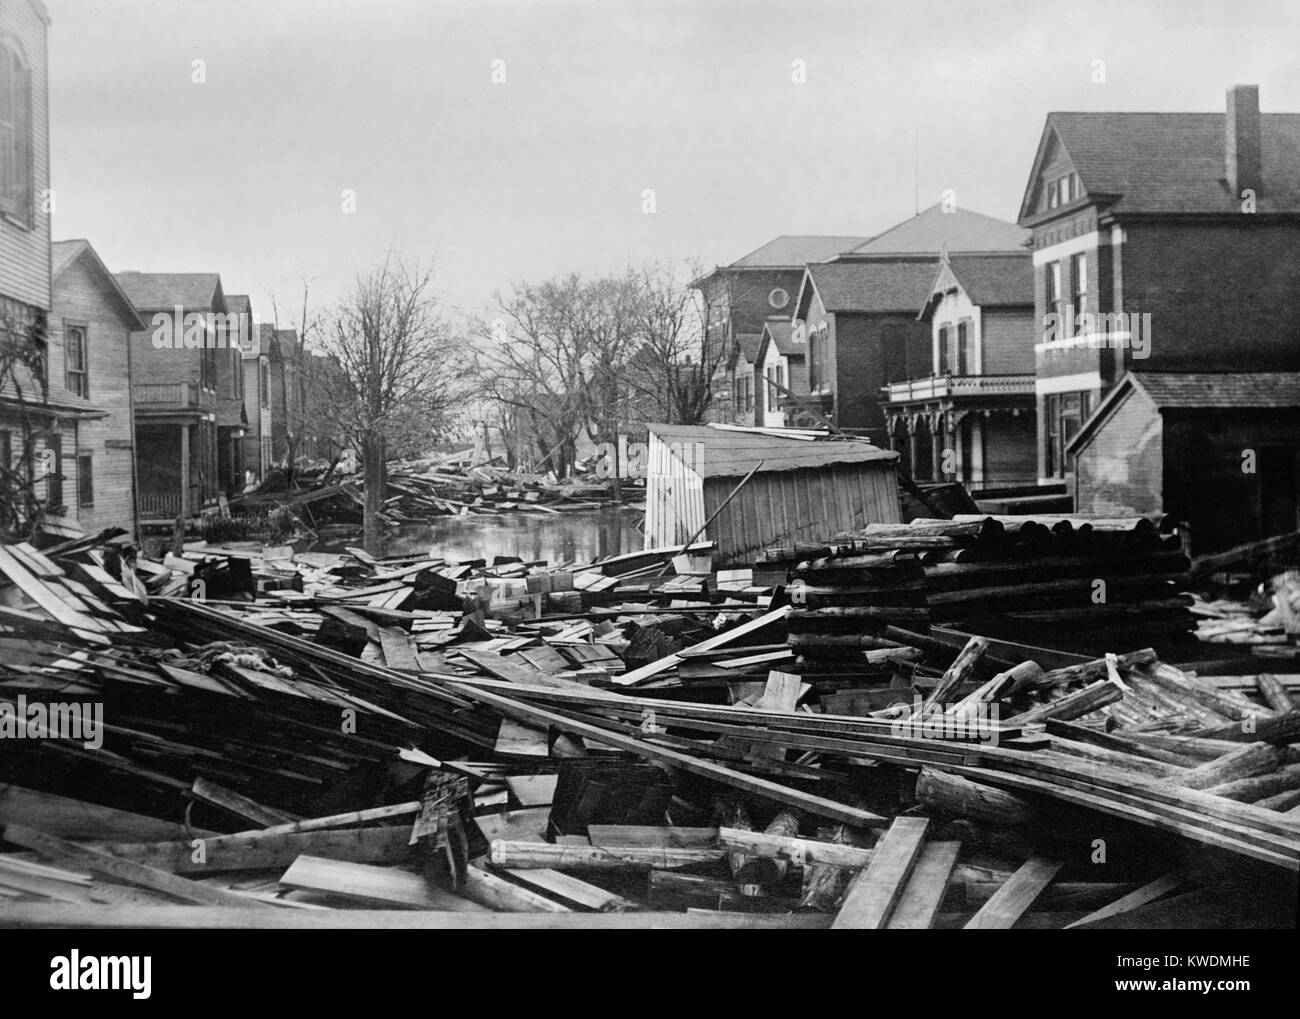 Piles of debris in a residential street in Dayton Ohio in 1913. Levees containing the Great Miami River failed during - Stock Image